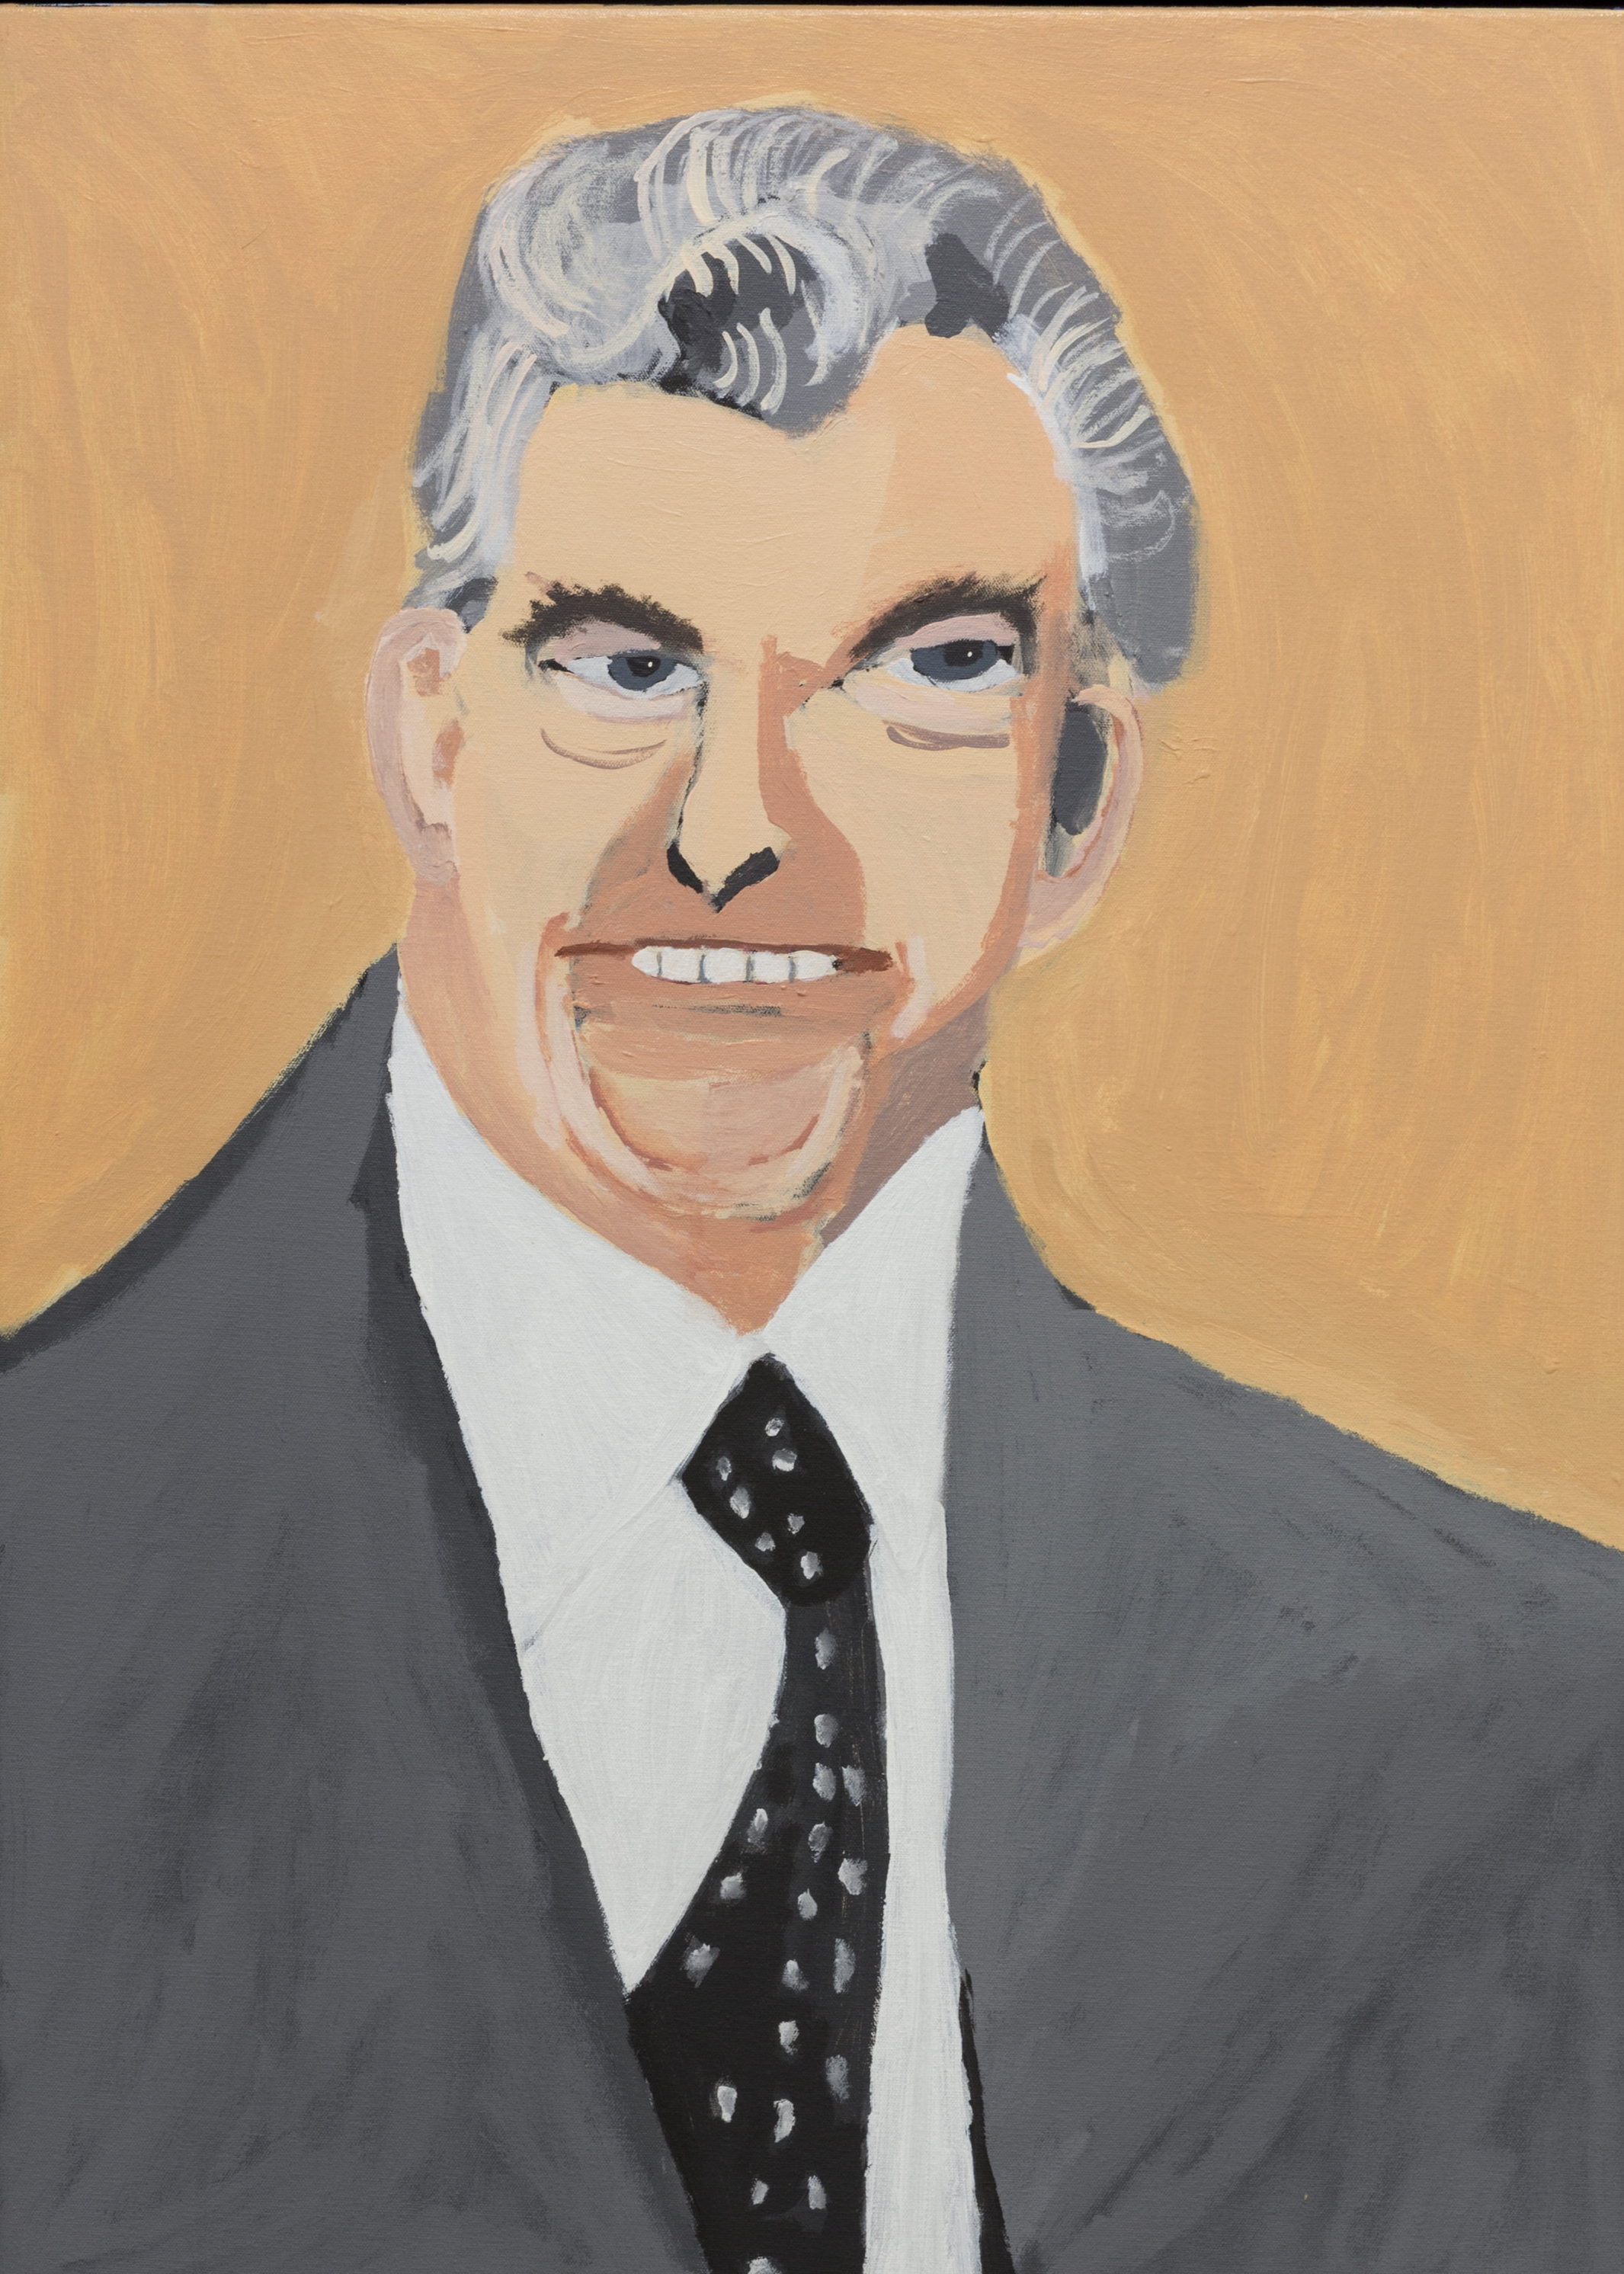 Vincent Namatijira,  Bob Hawke,  2016, acrylic on canvas, 91 x 67 cm. Courtesy of the artist, THIS IS NO FANTASY + dianne tanzer gallery and Iwantja Arts.